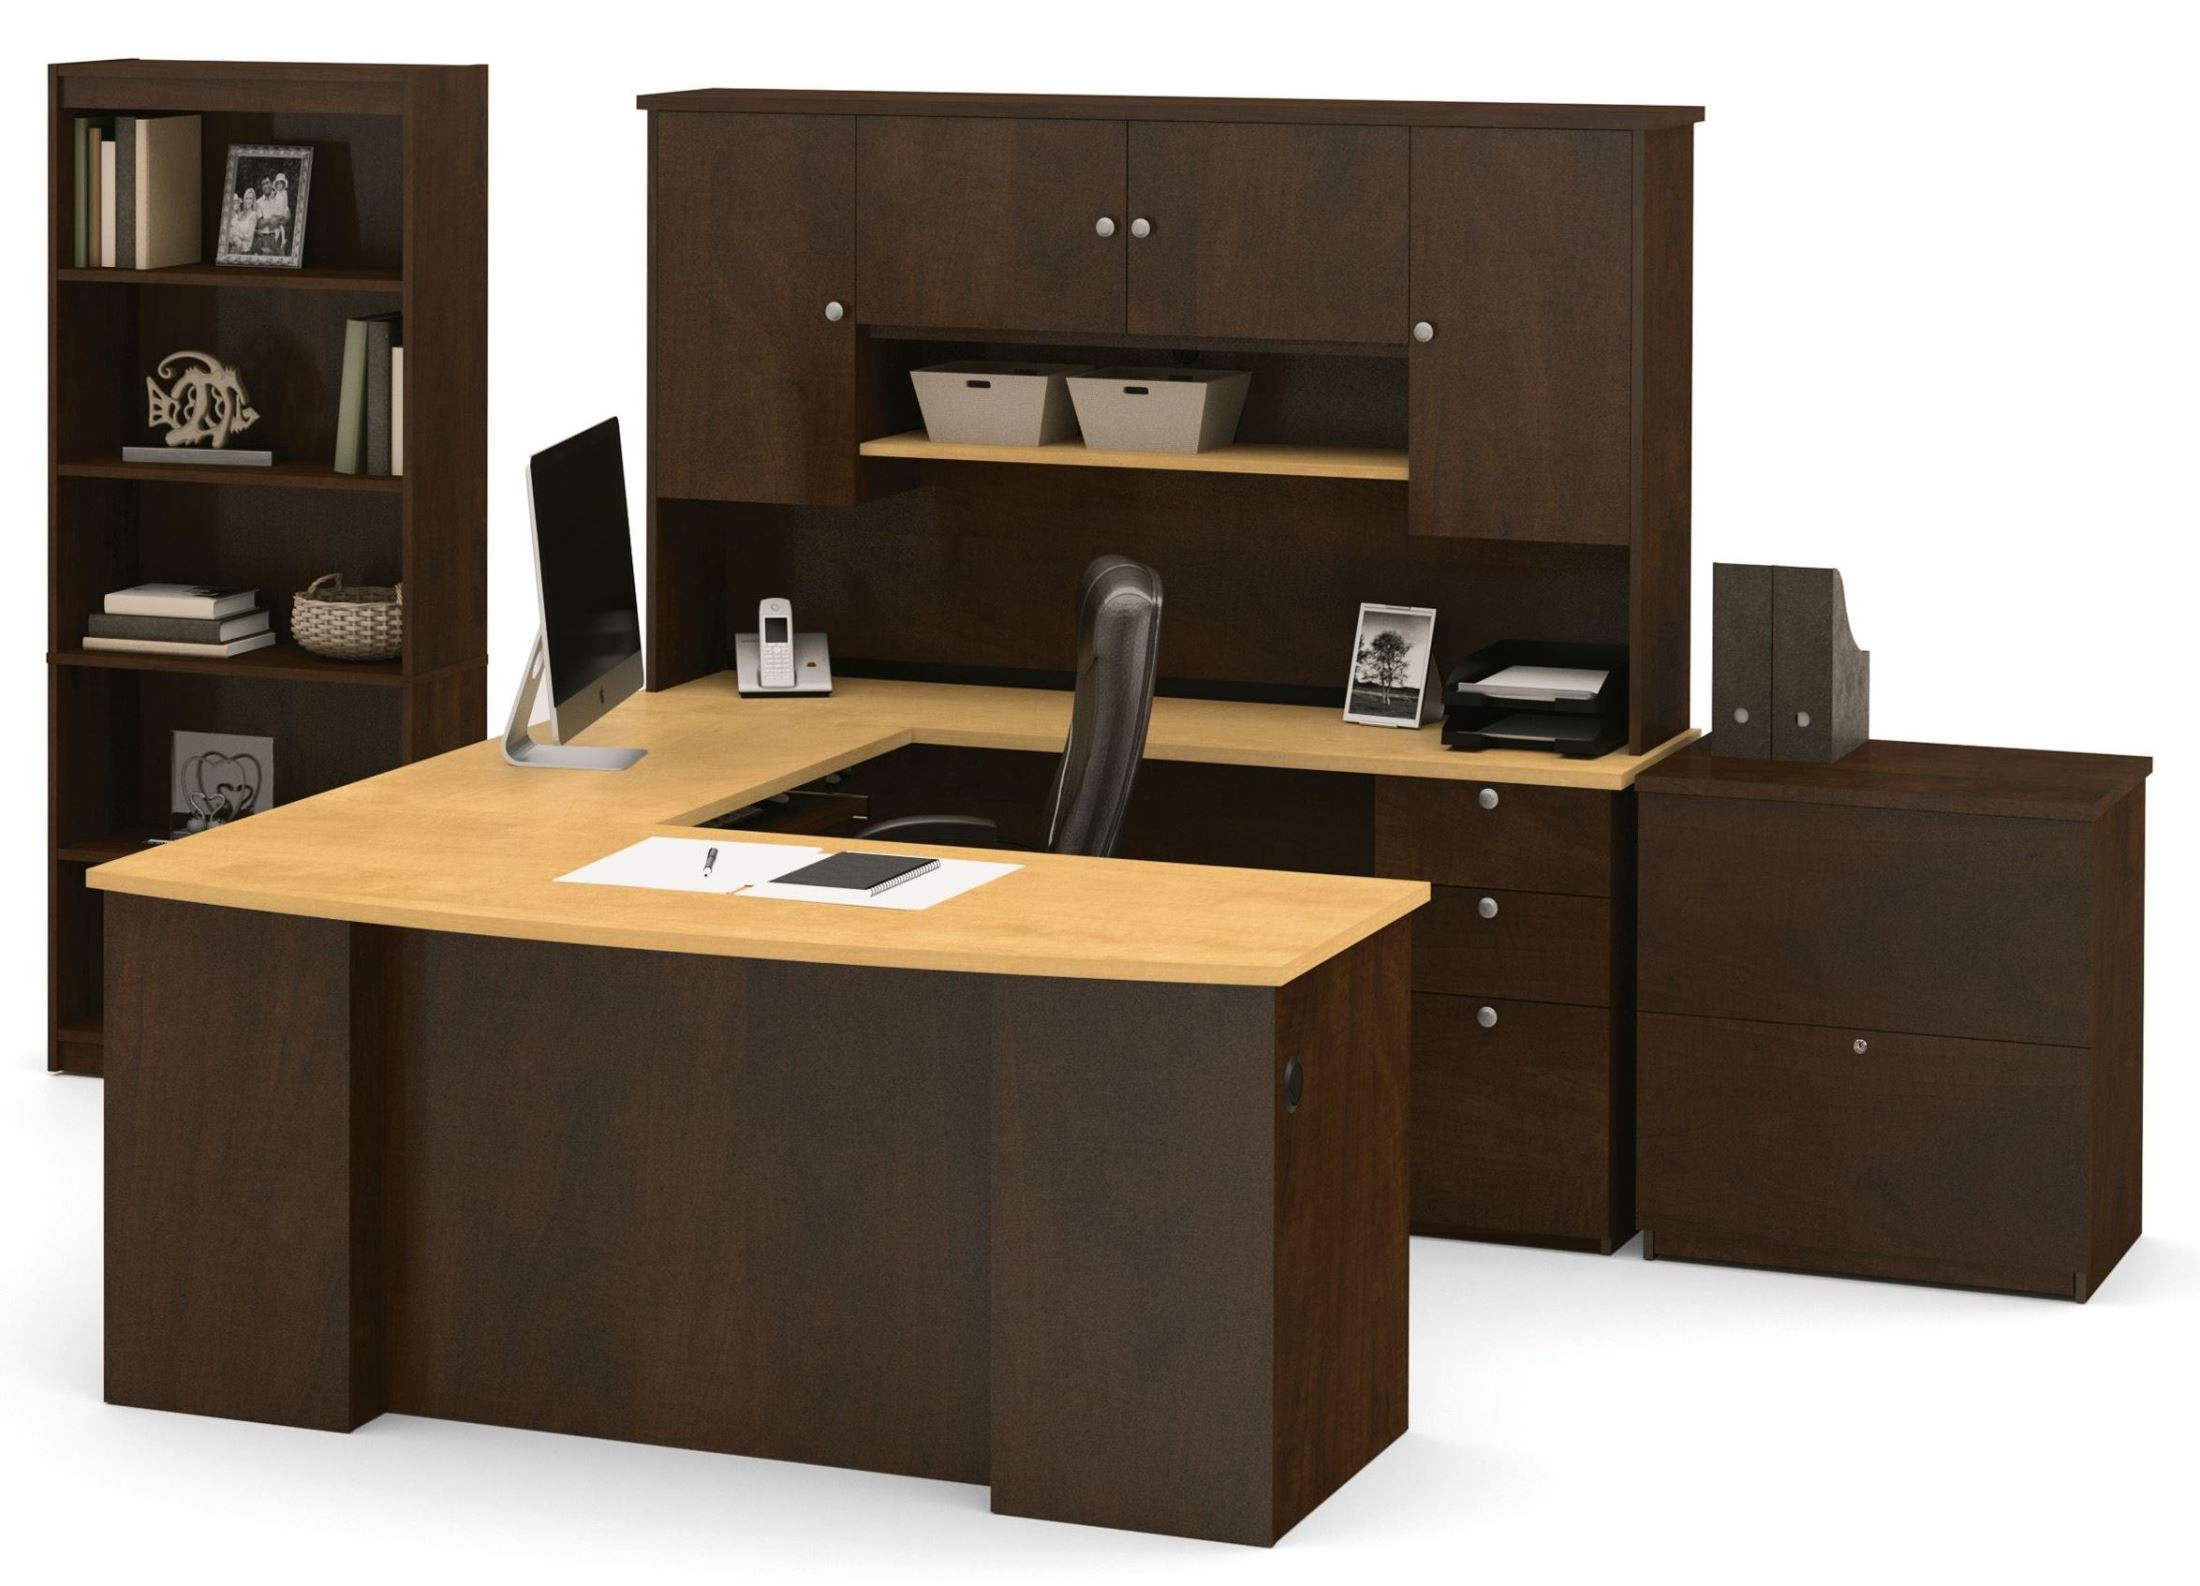 manhattan secret maple chocolate u shaped workstation from bestar 81850 1575 coleman furniture. Black Bedroom Furniture Sets. Home Design Ideas